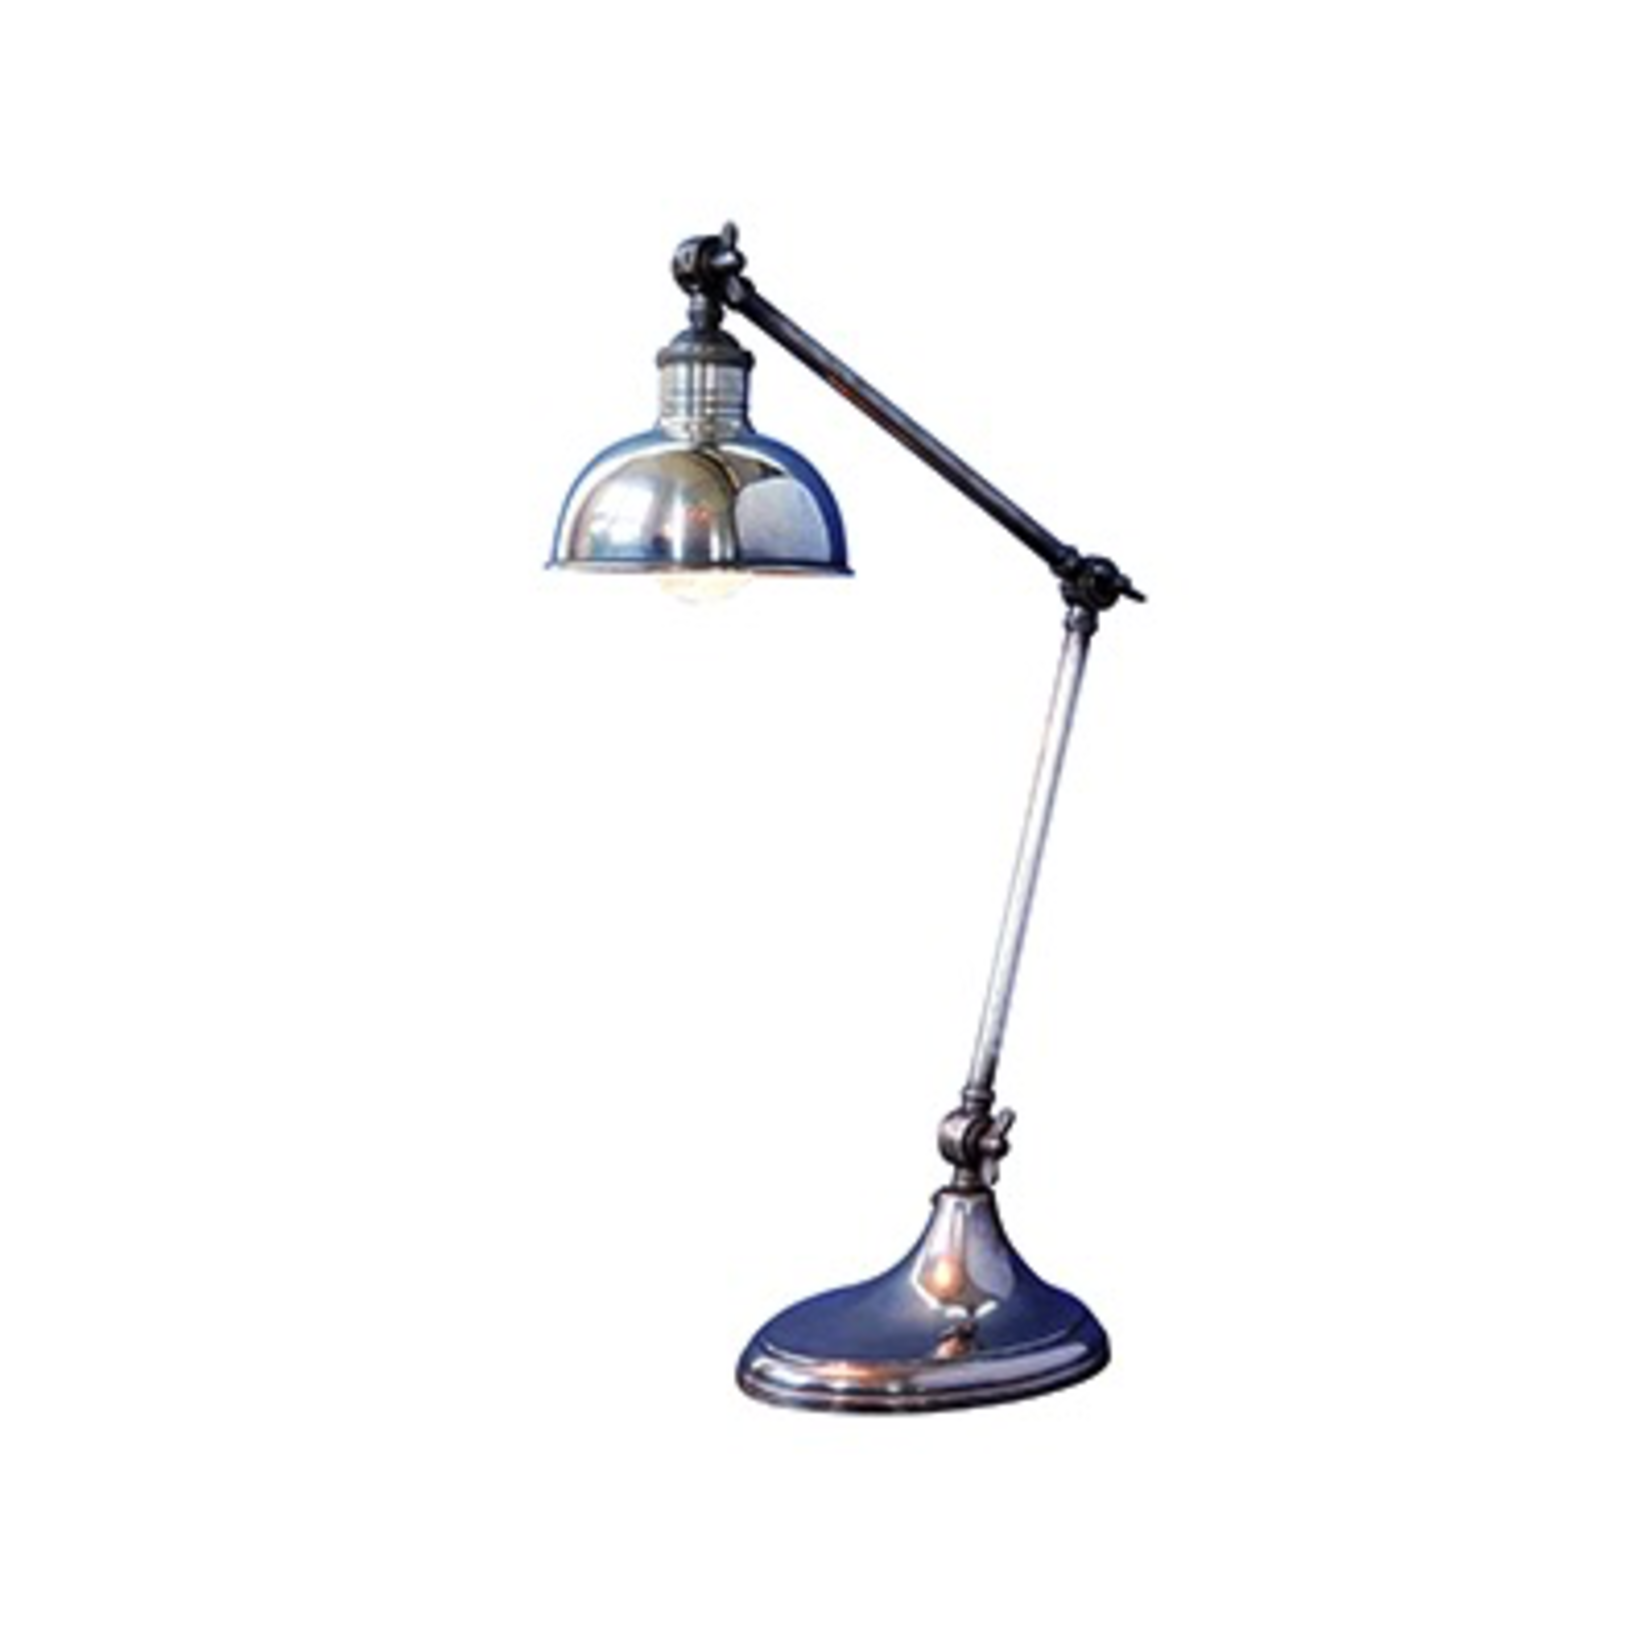 CHEHOMA TABLE LAMP WHITH OVAL BASE